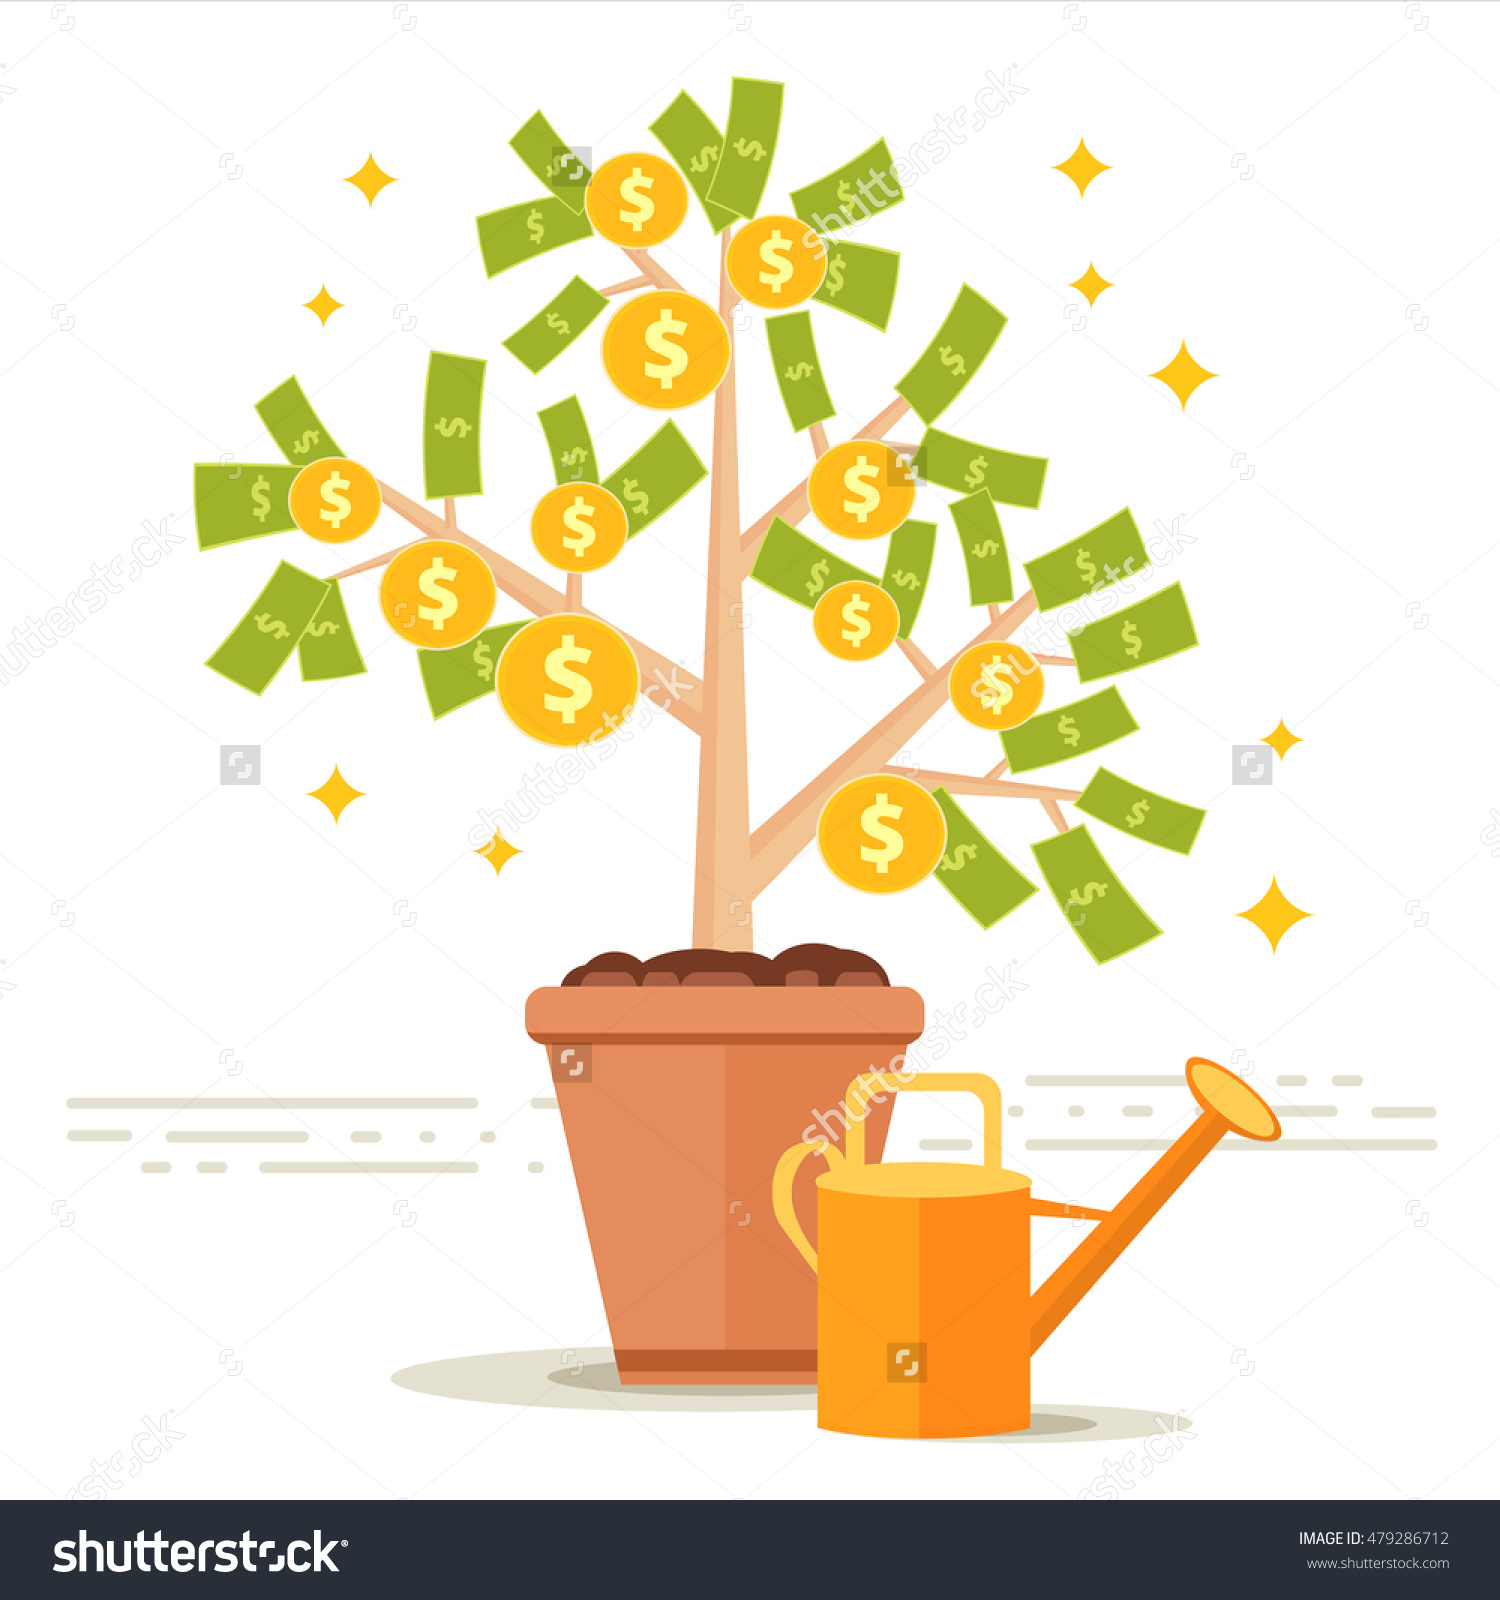 Money Tree Vector Illustration. Dollar Leaves And Golden Coin.